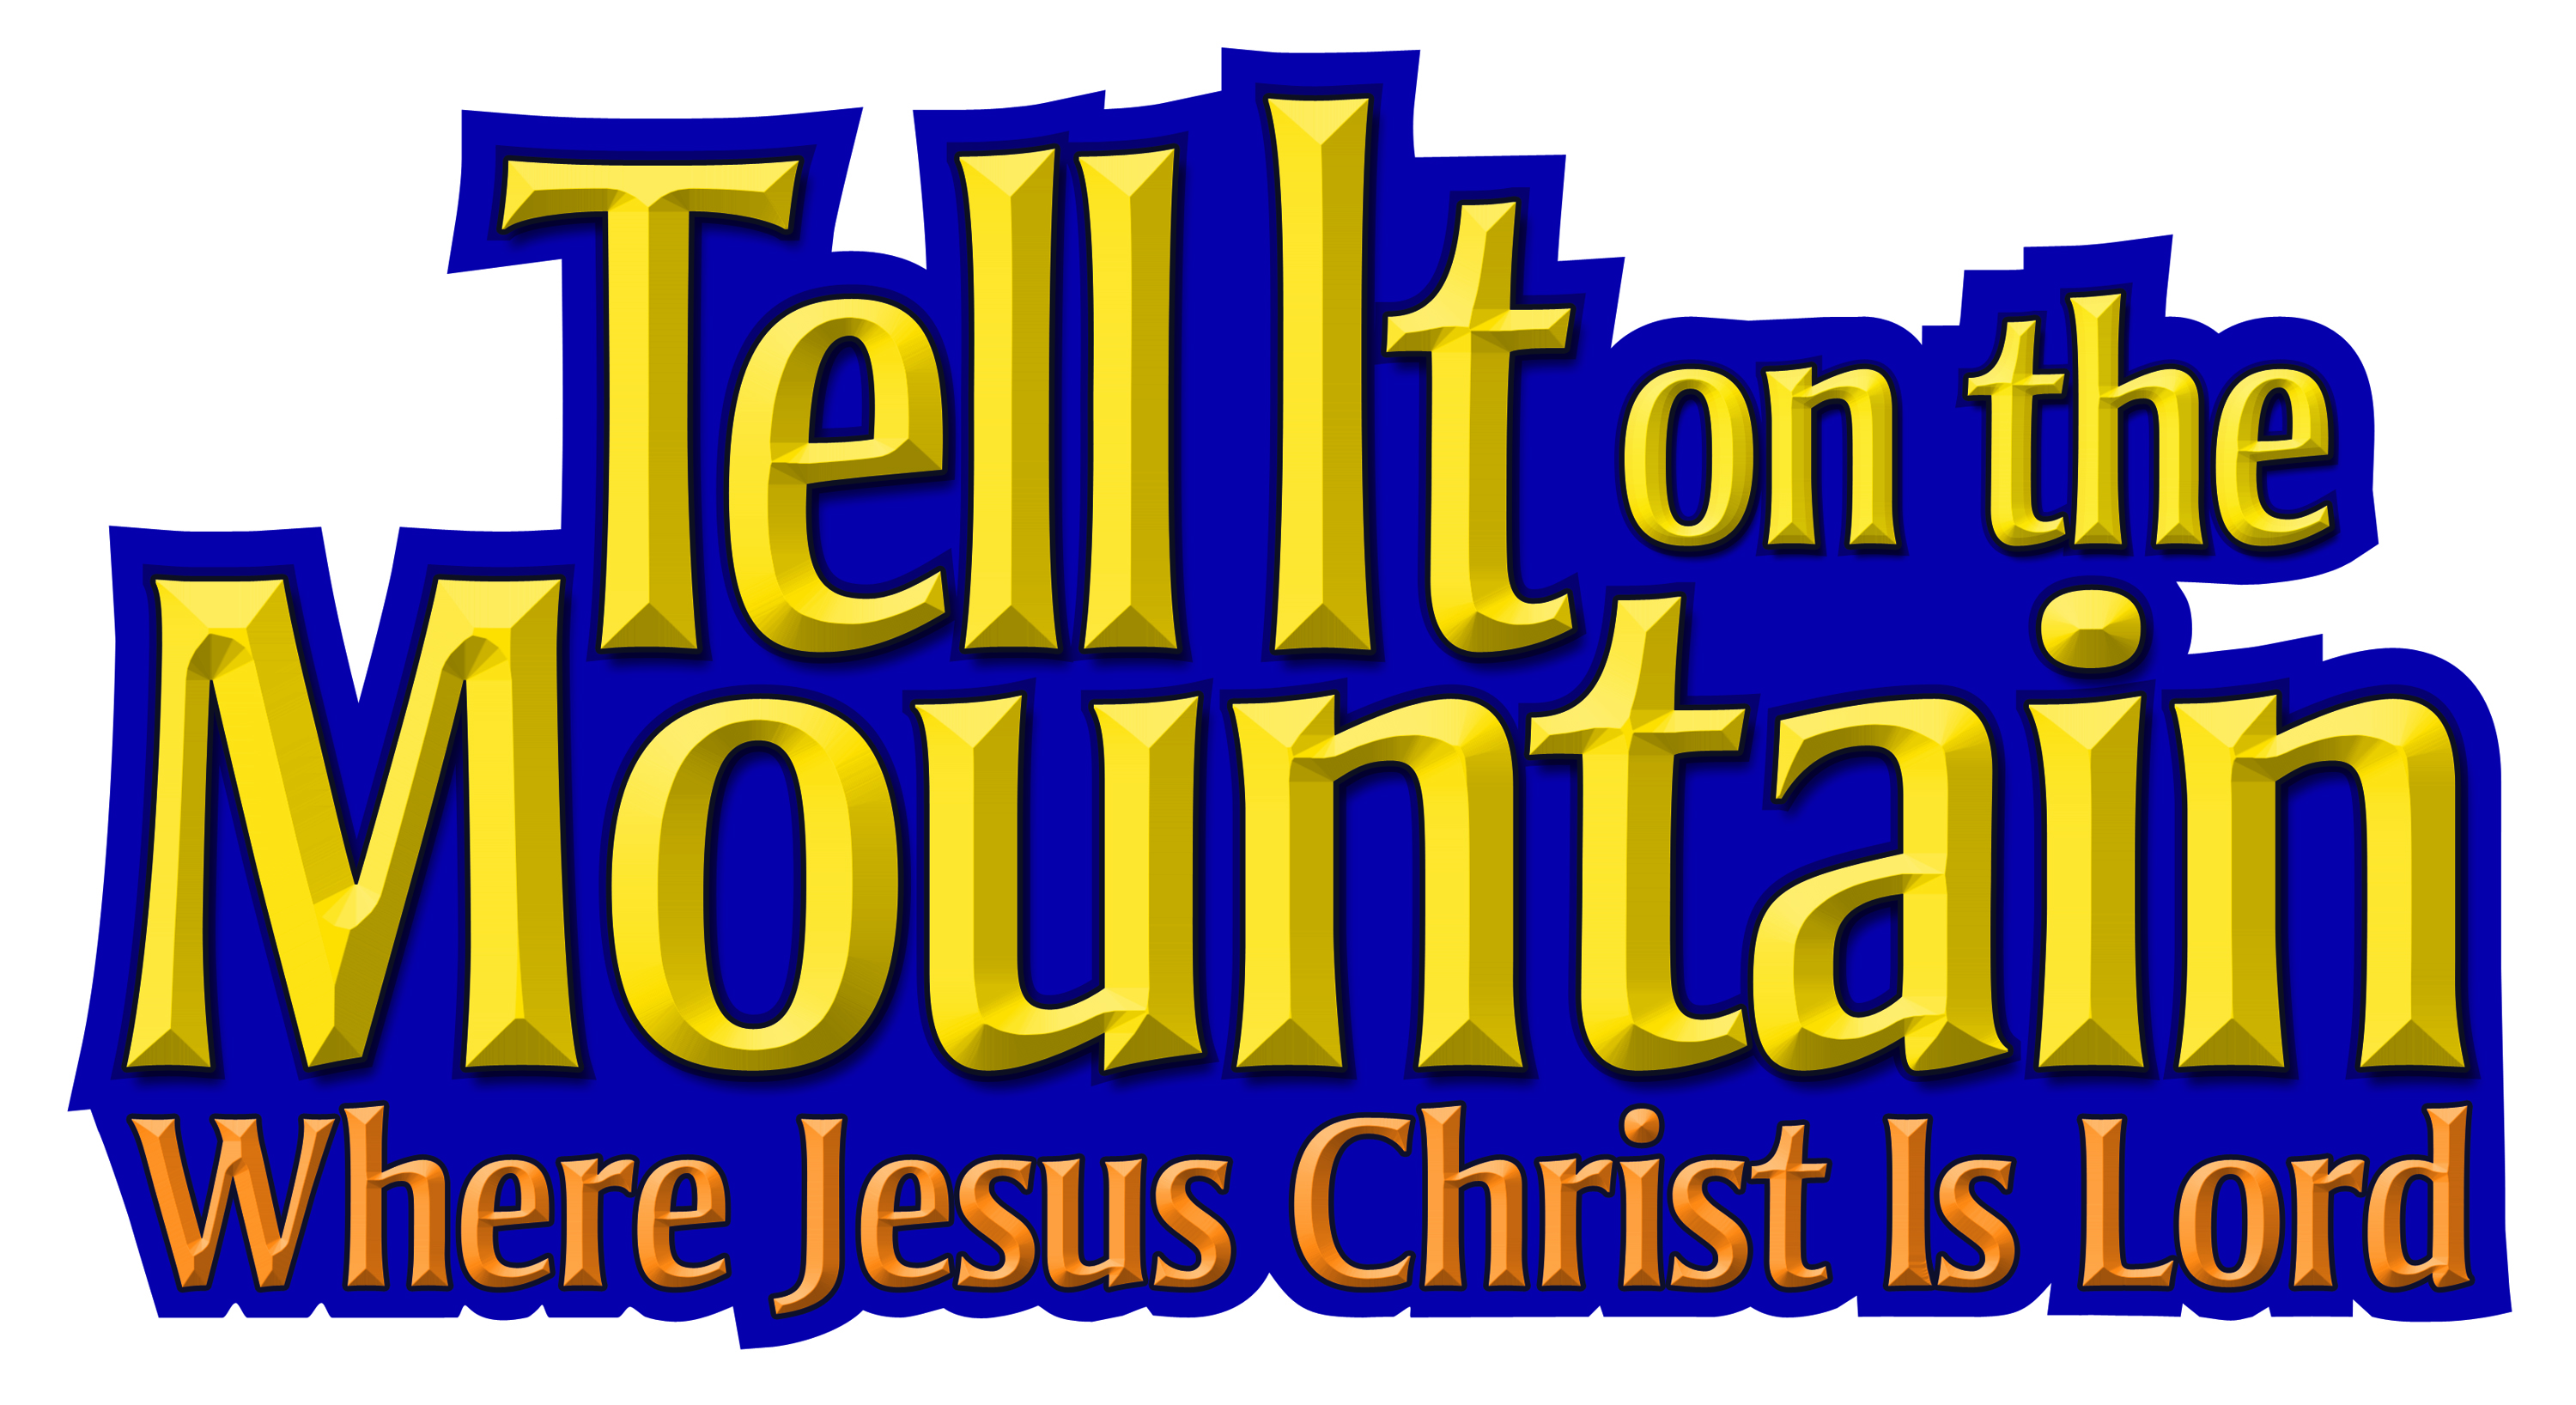 Mountain clipart banner #12